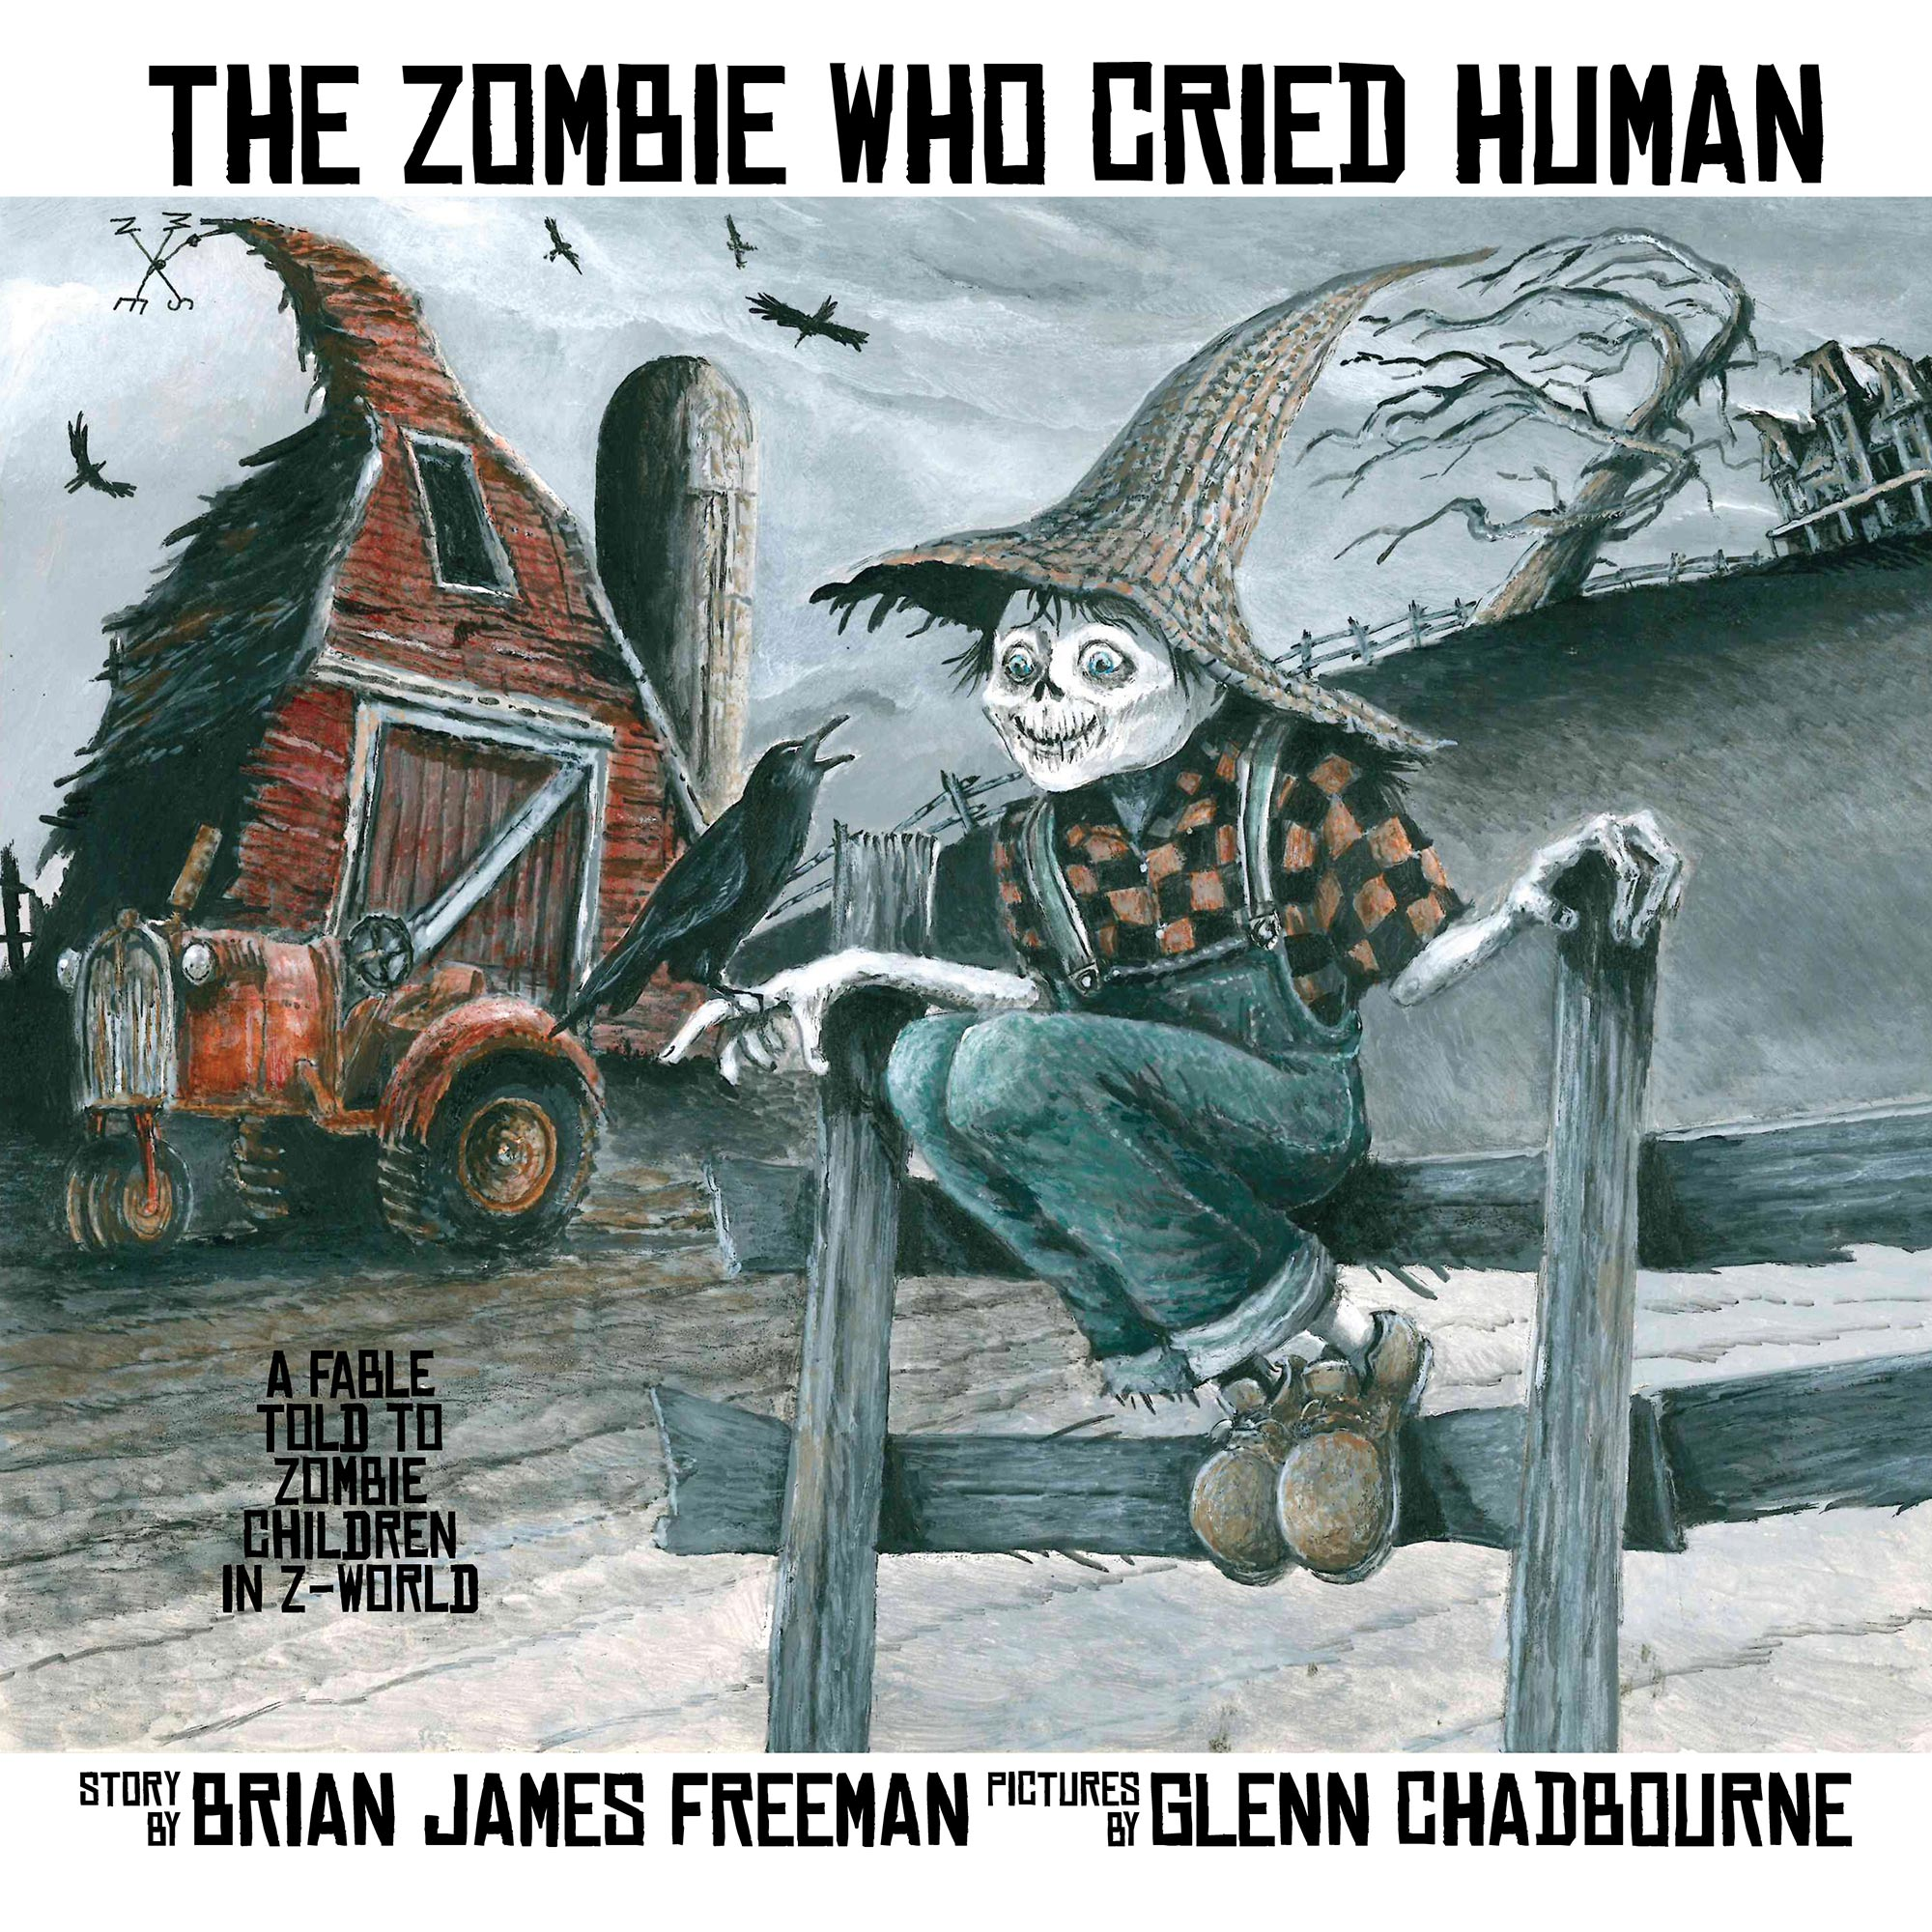 The Zombie Who Cried Humna by Brian James Freeman and Glenn Chadbourne